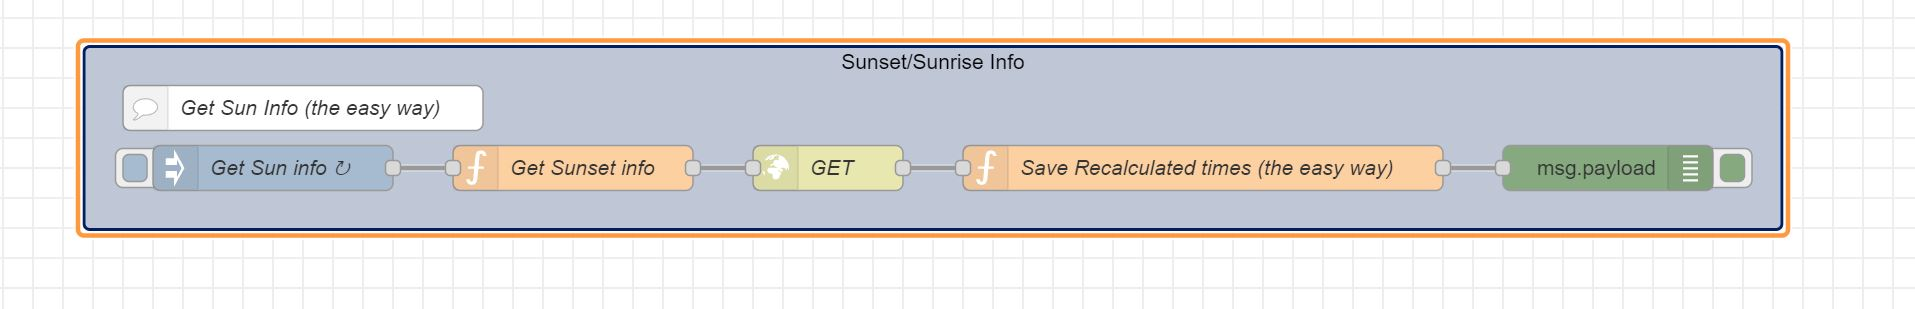 Using API to get sunset/sunrise info in NodeRED